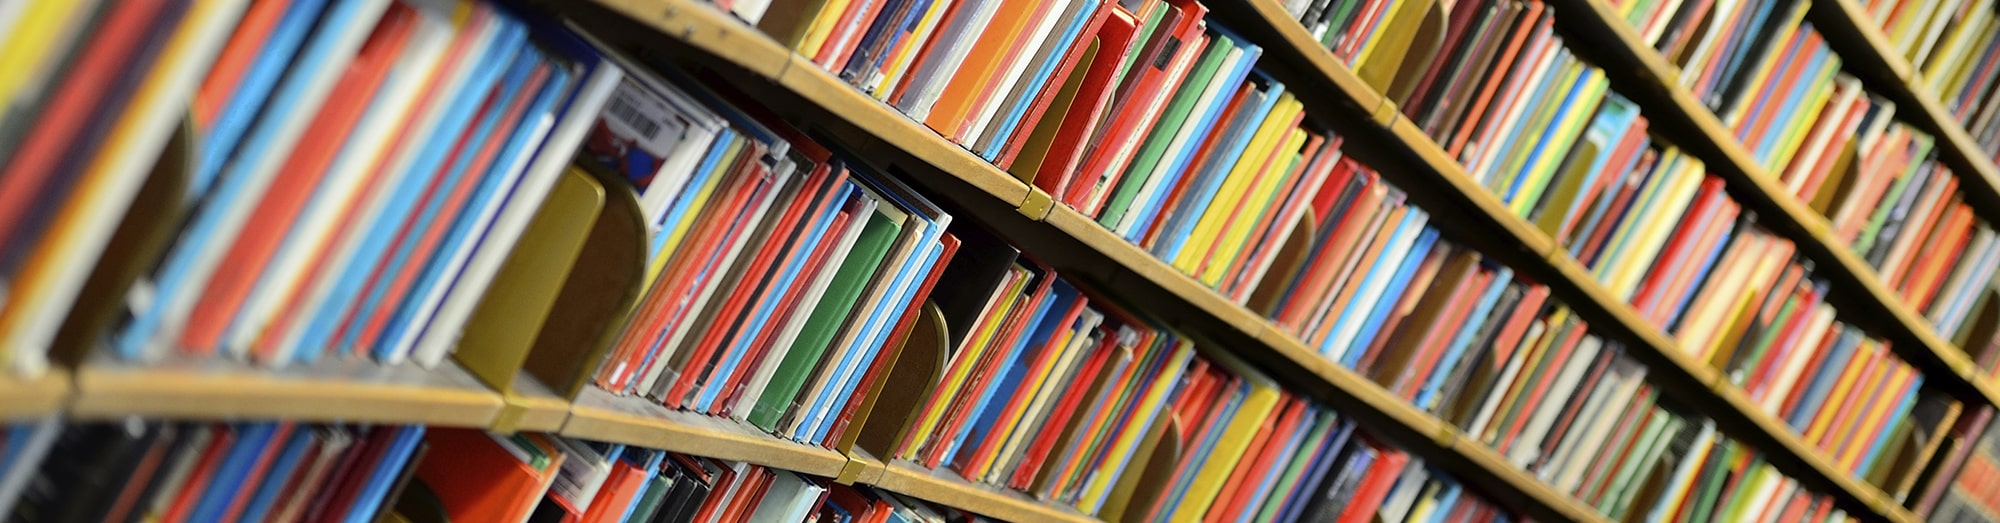 Colorful books lined up on a bookshelf